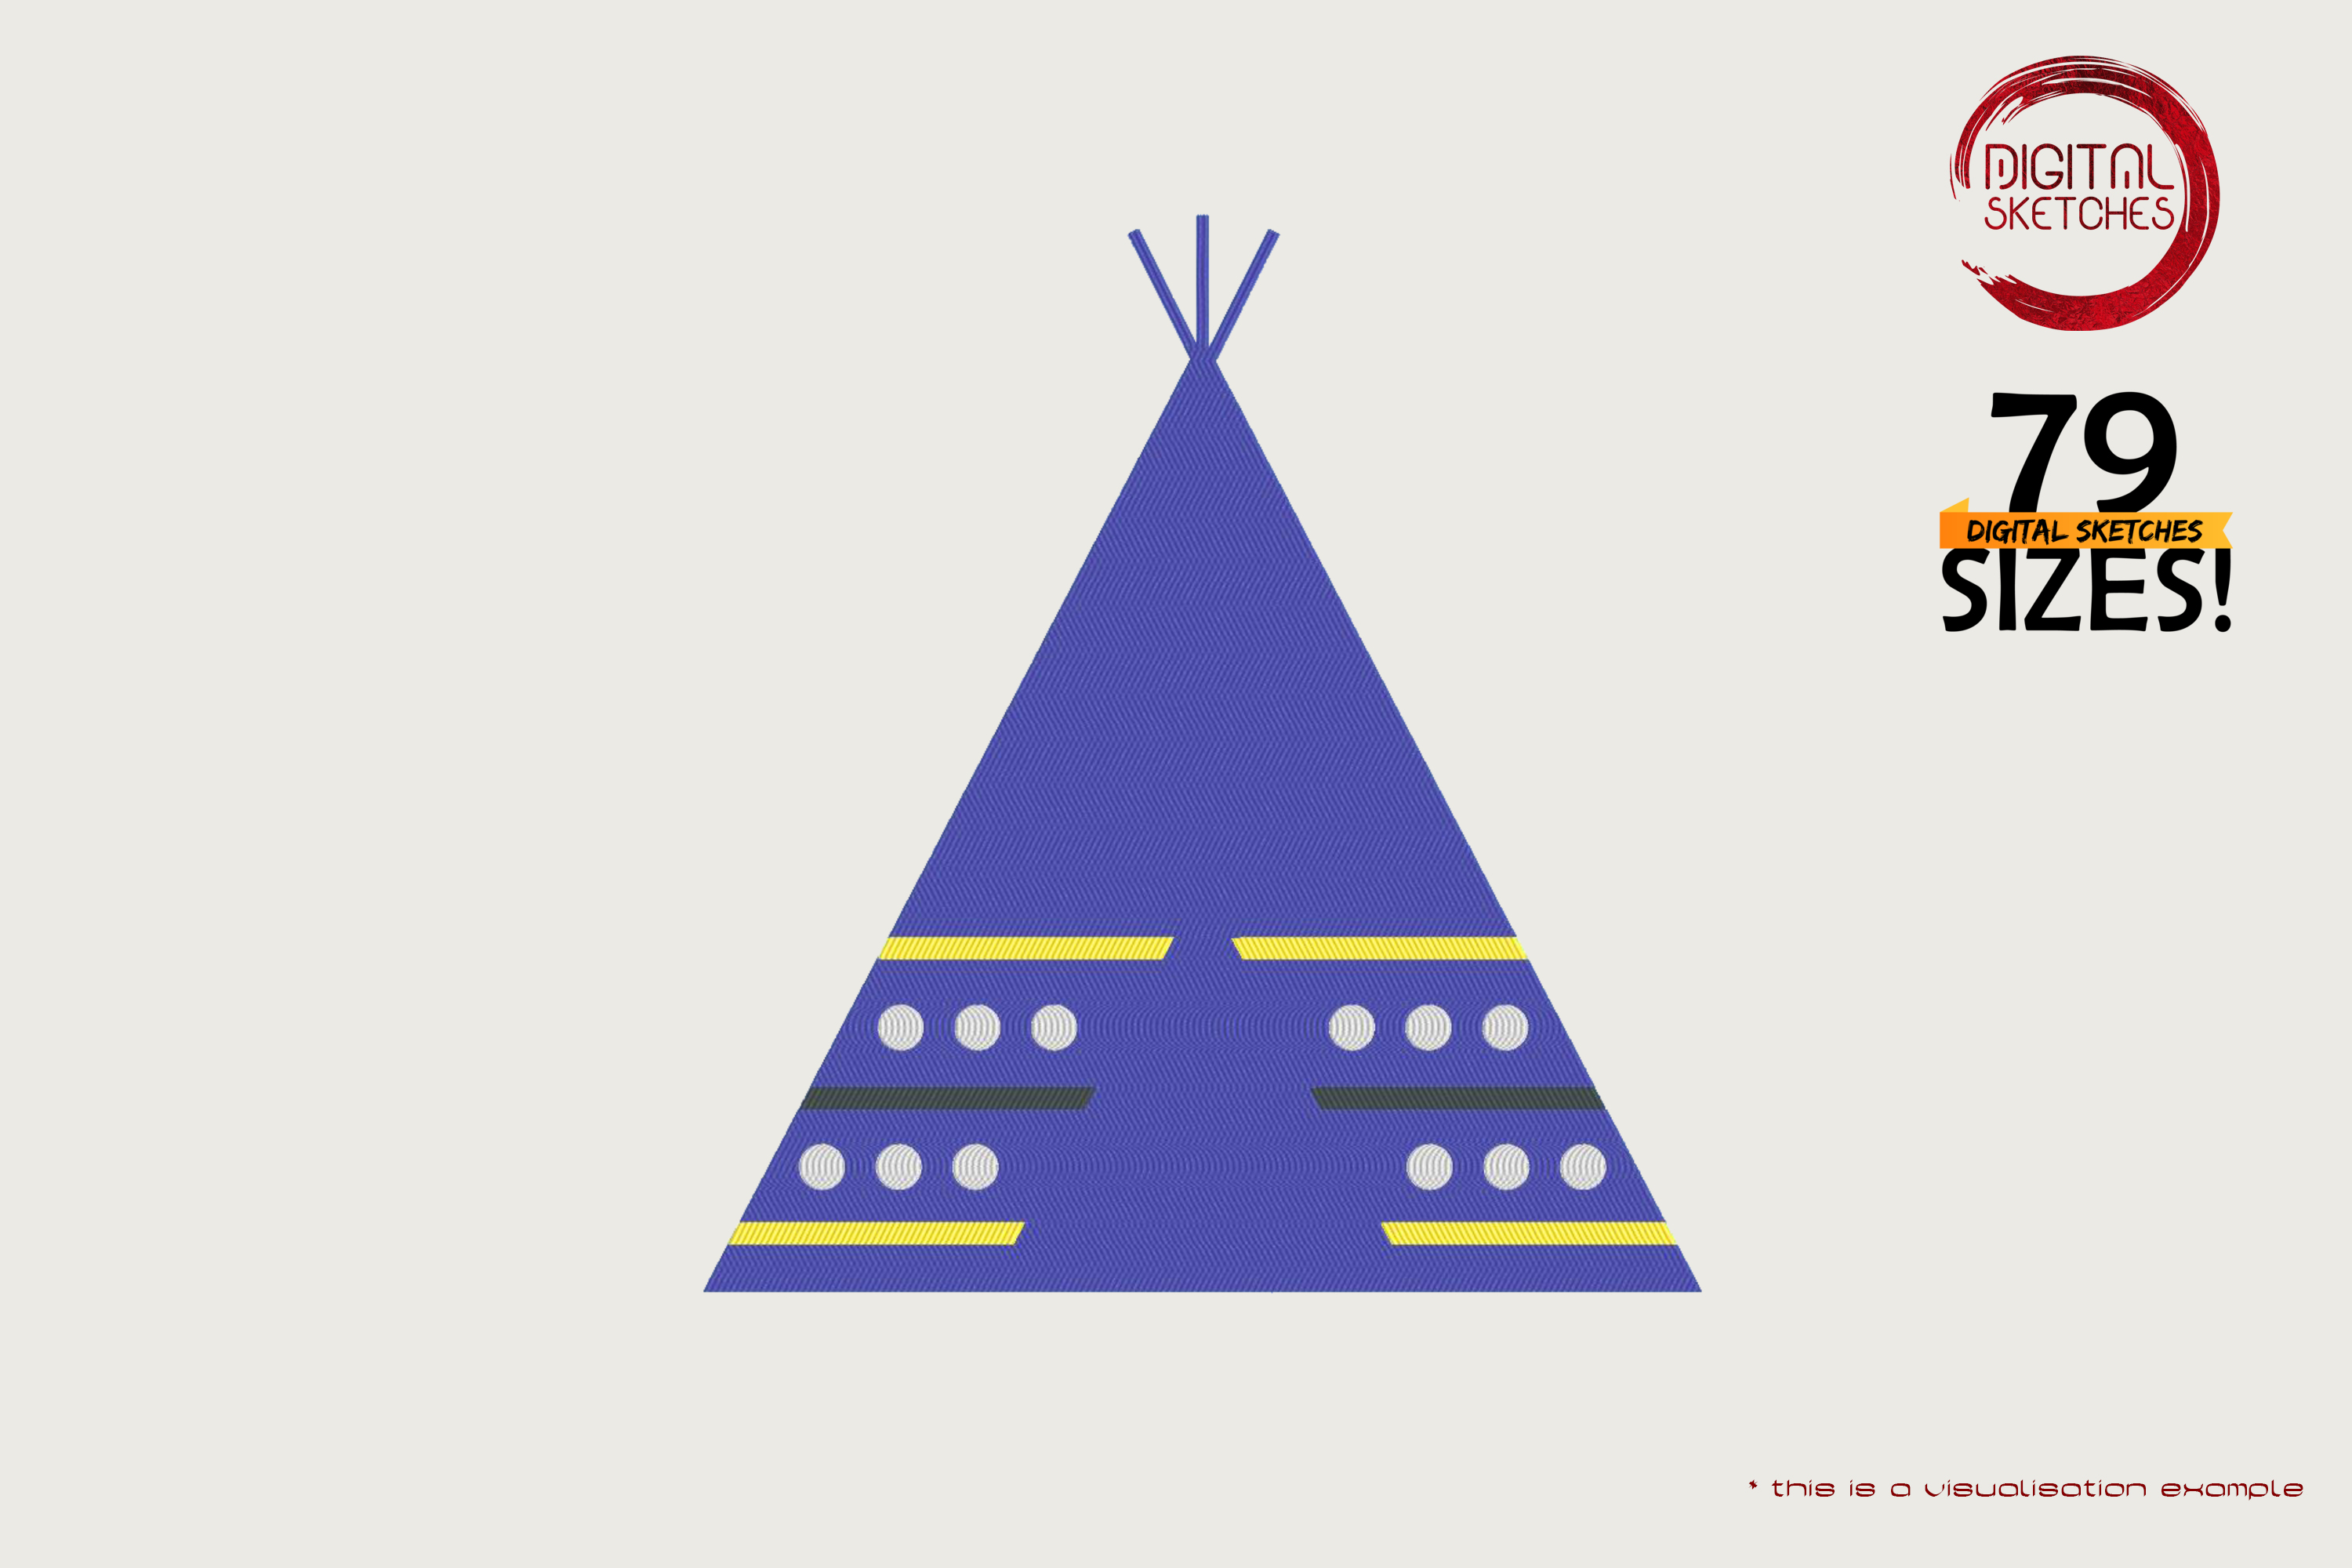 Tipi-Teepee-Tepee-Tent-Native American Peoples Of North America